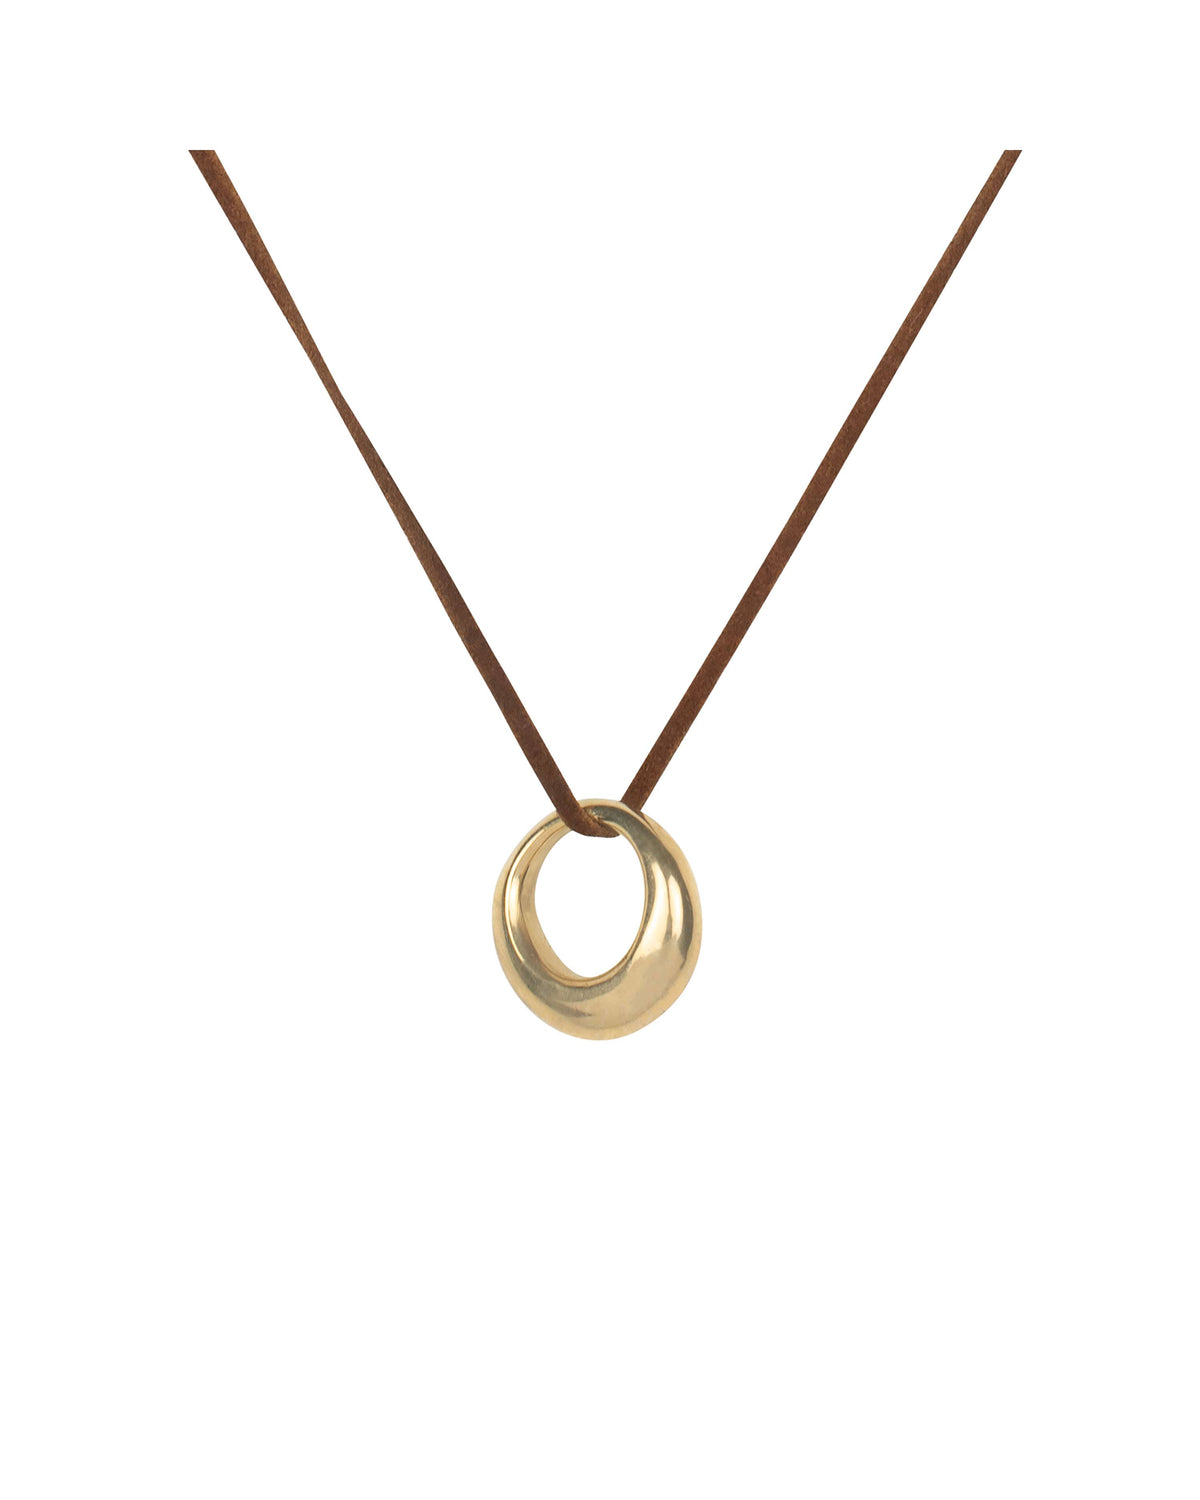 ROUNDED RING PENDANT